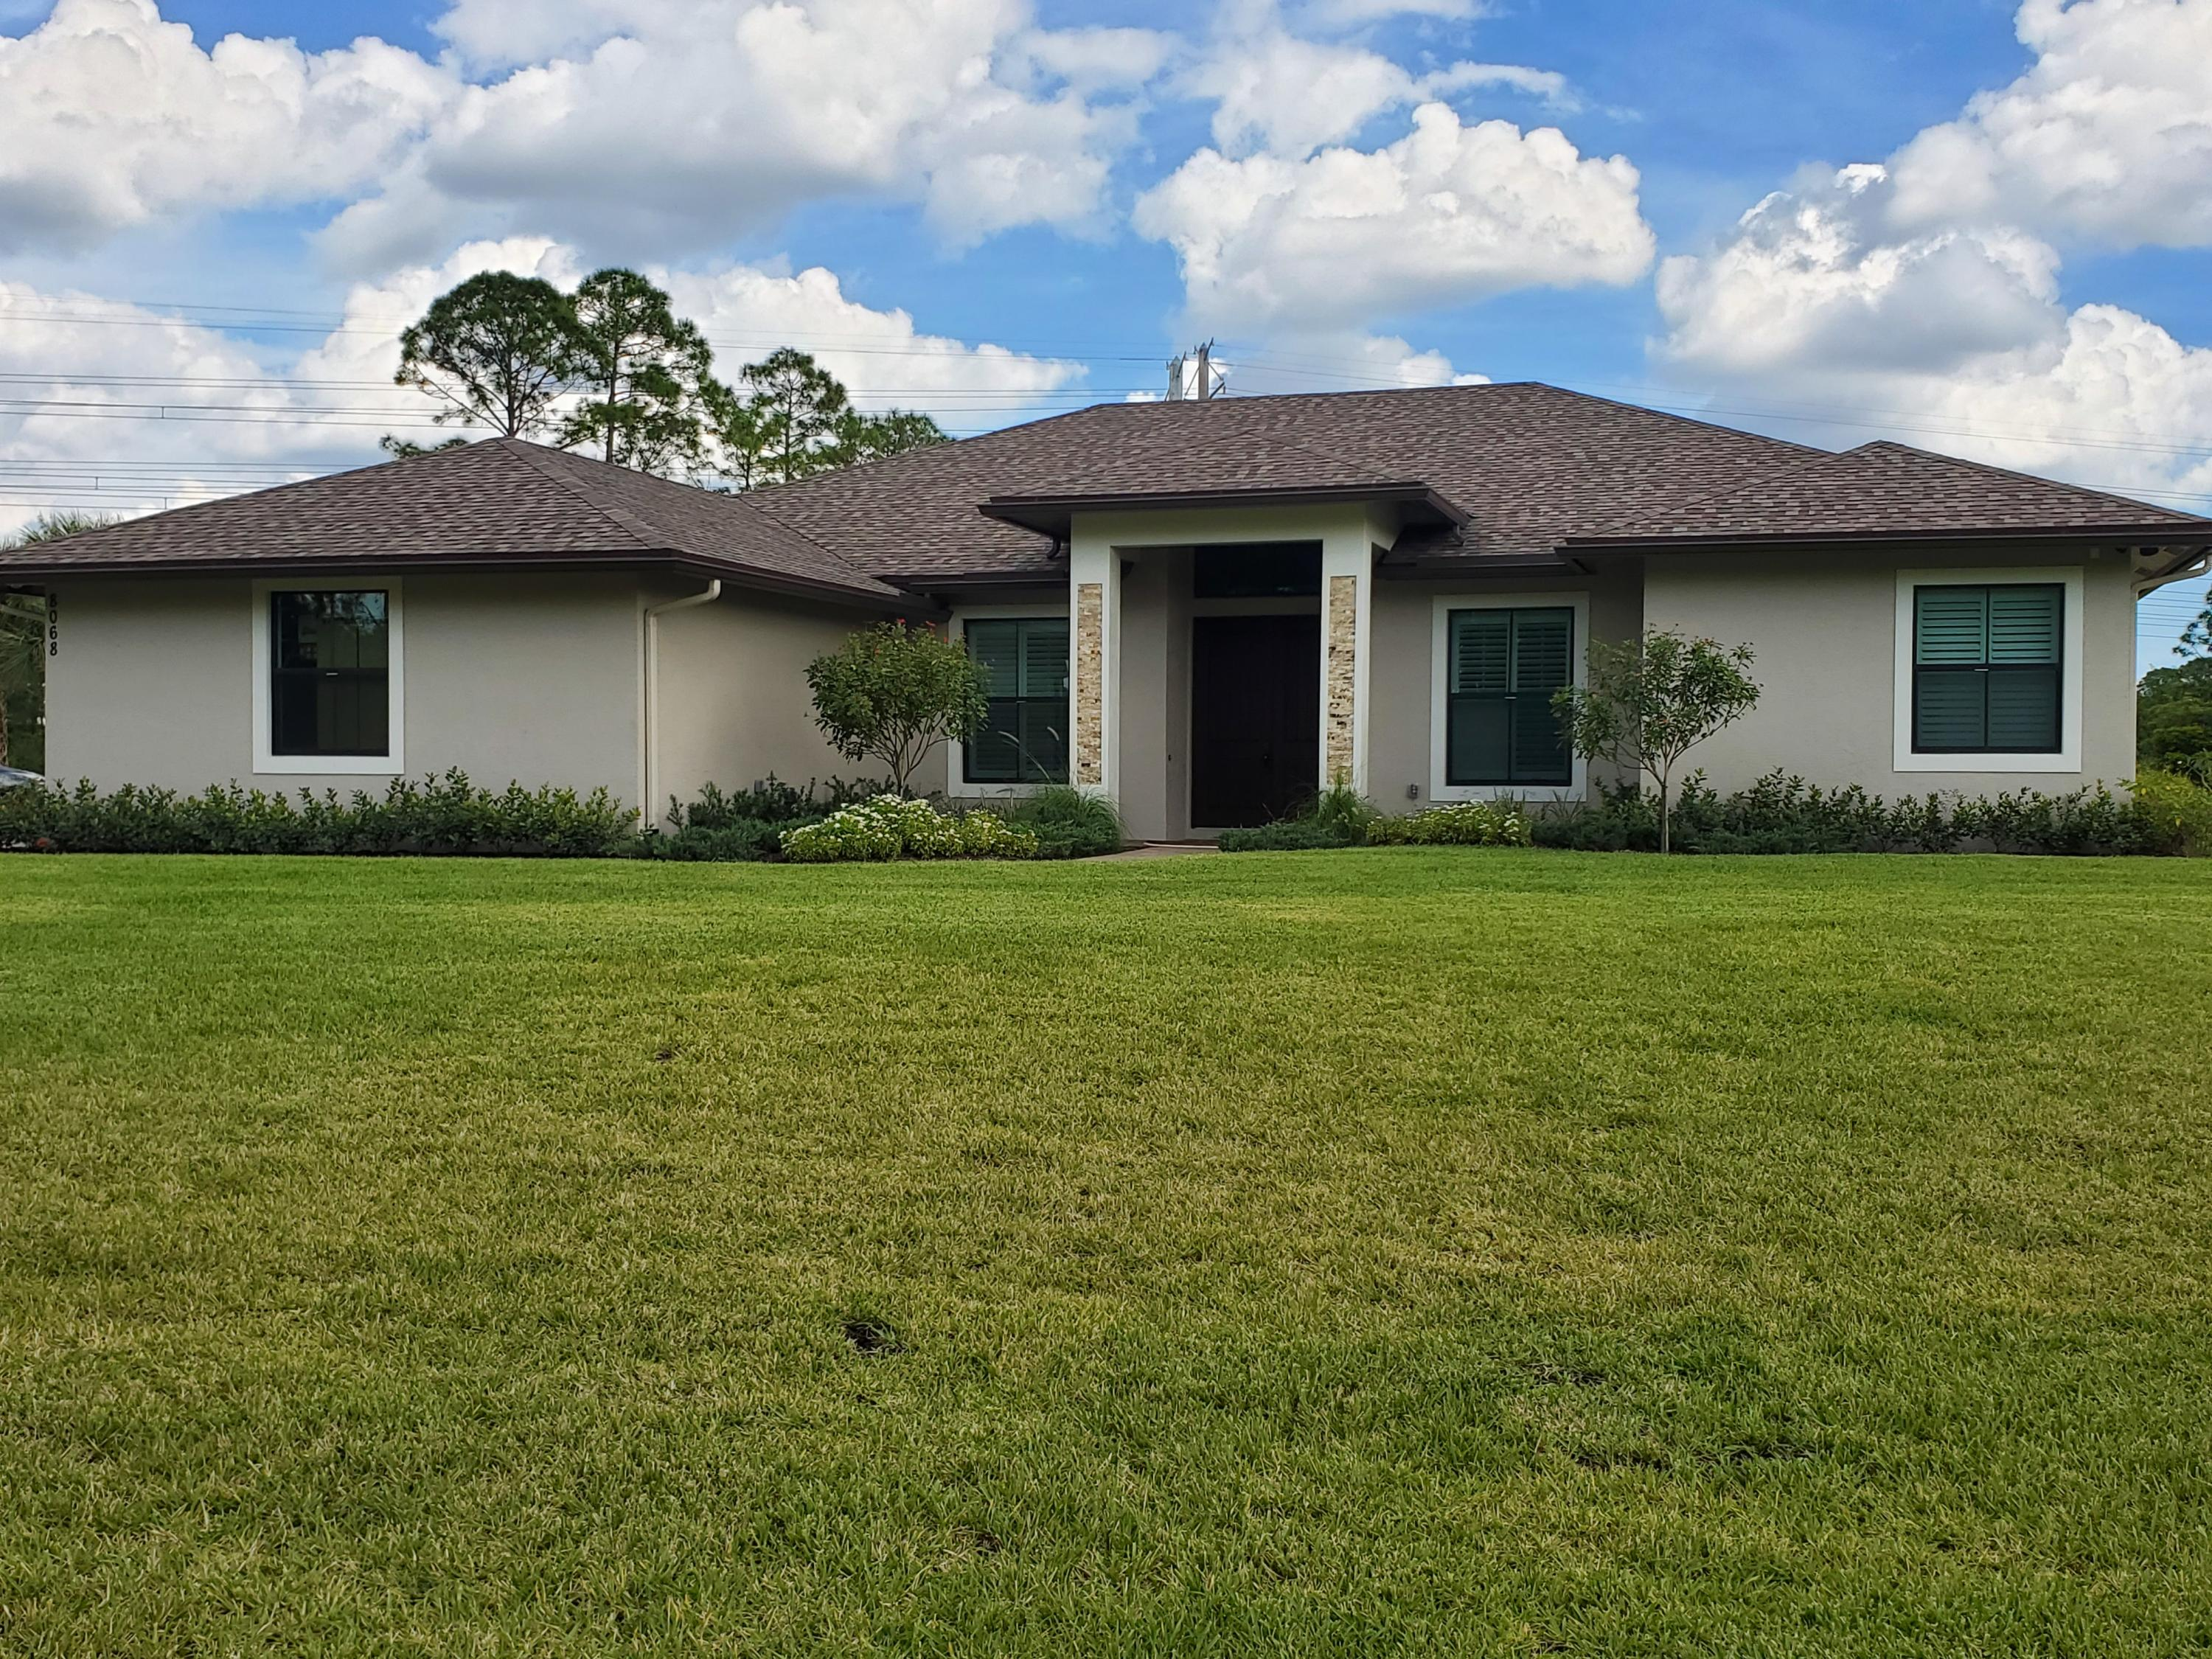 16025 84th Court N, Loxahatchee in Palm Beach County, FL 33470 Home for Sale